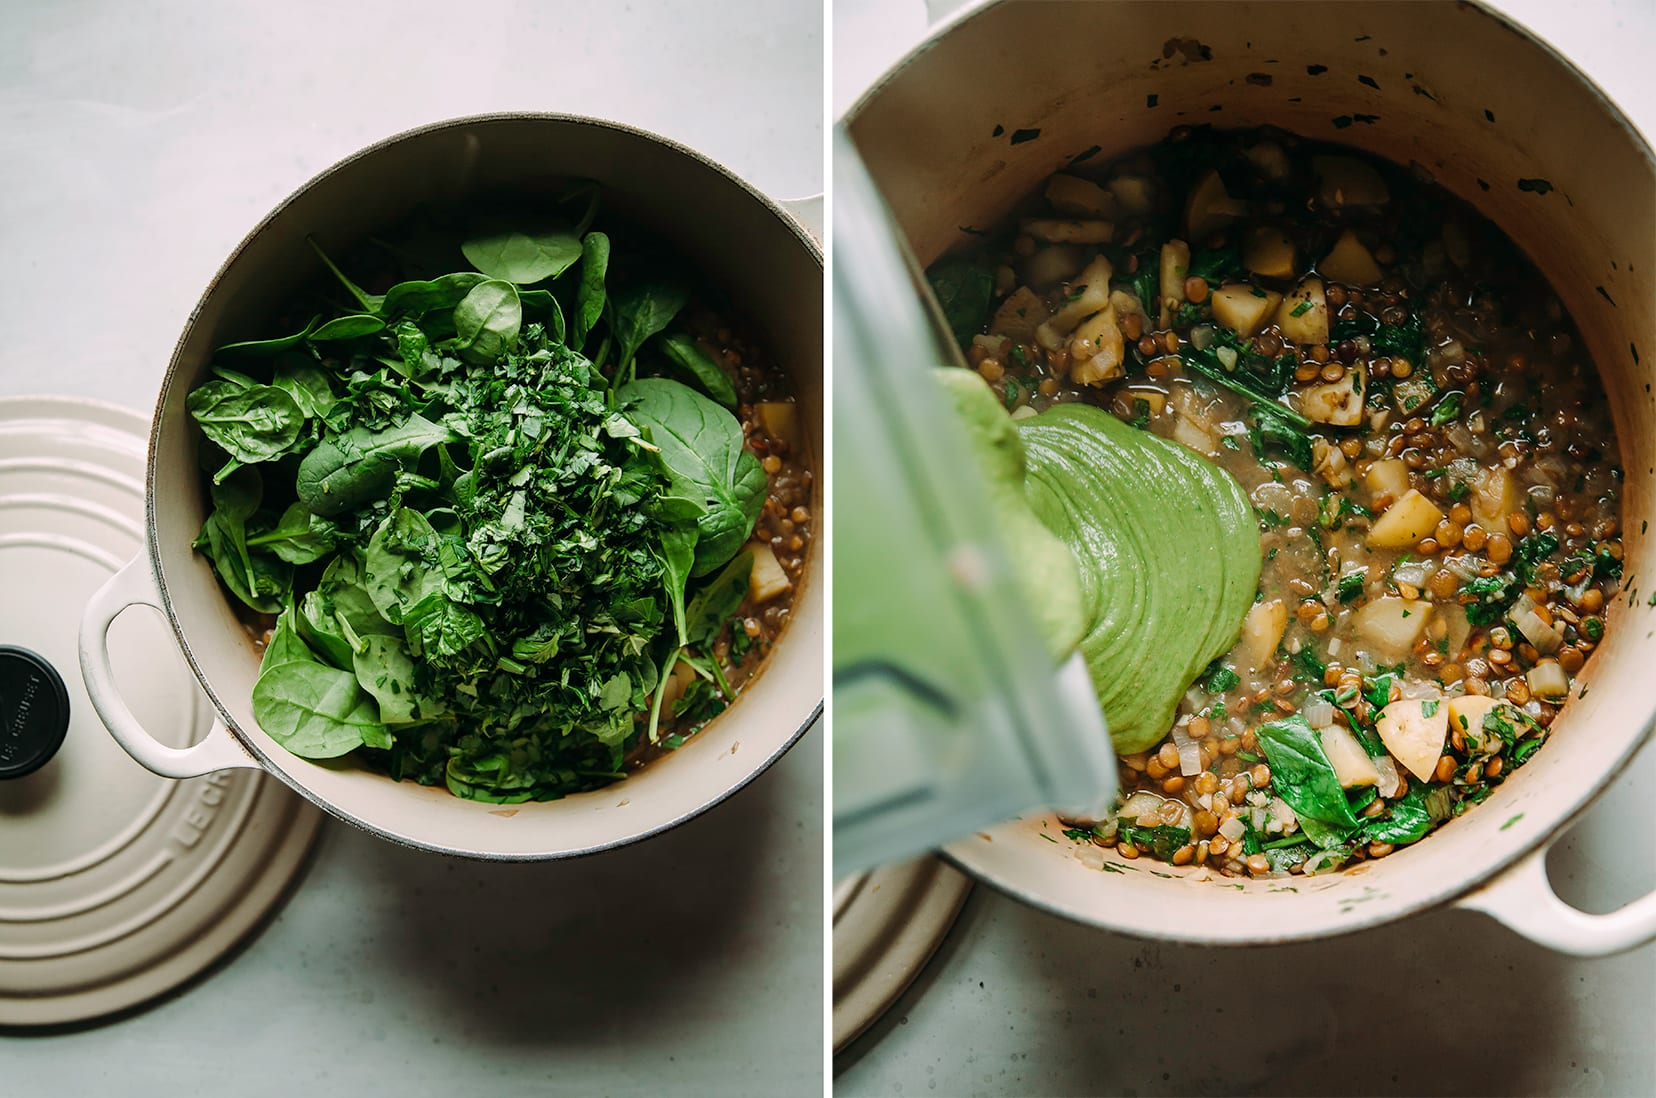 Images show a soup pot with a bunch of greens added and also a green purée being added to a broth soup.